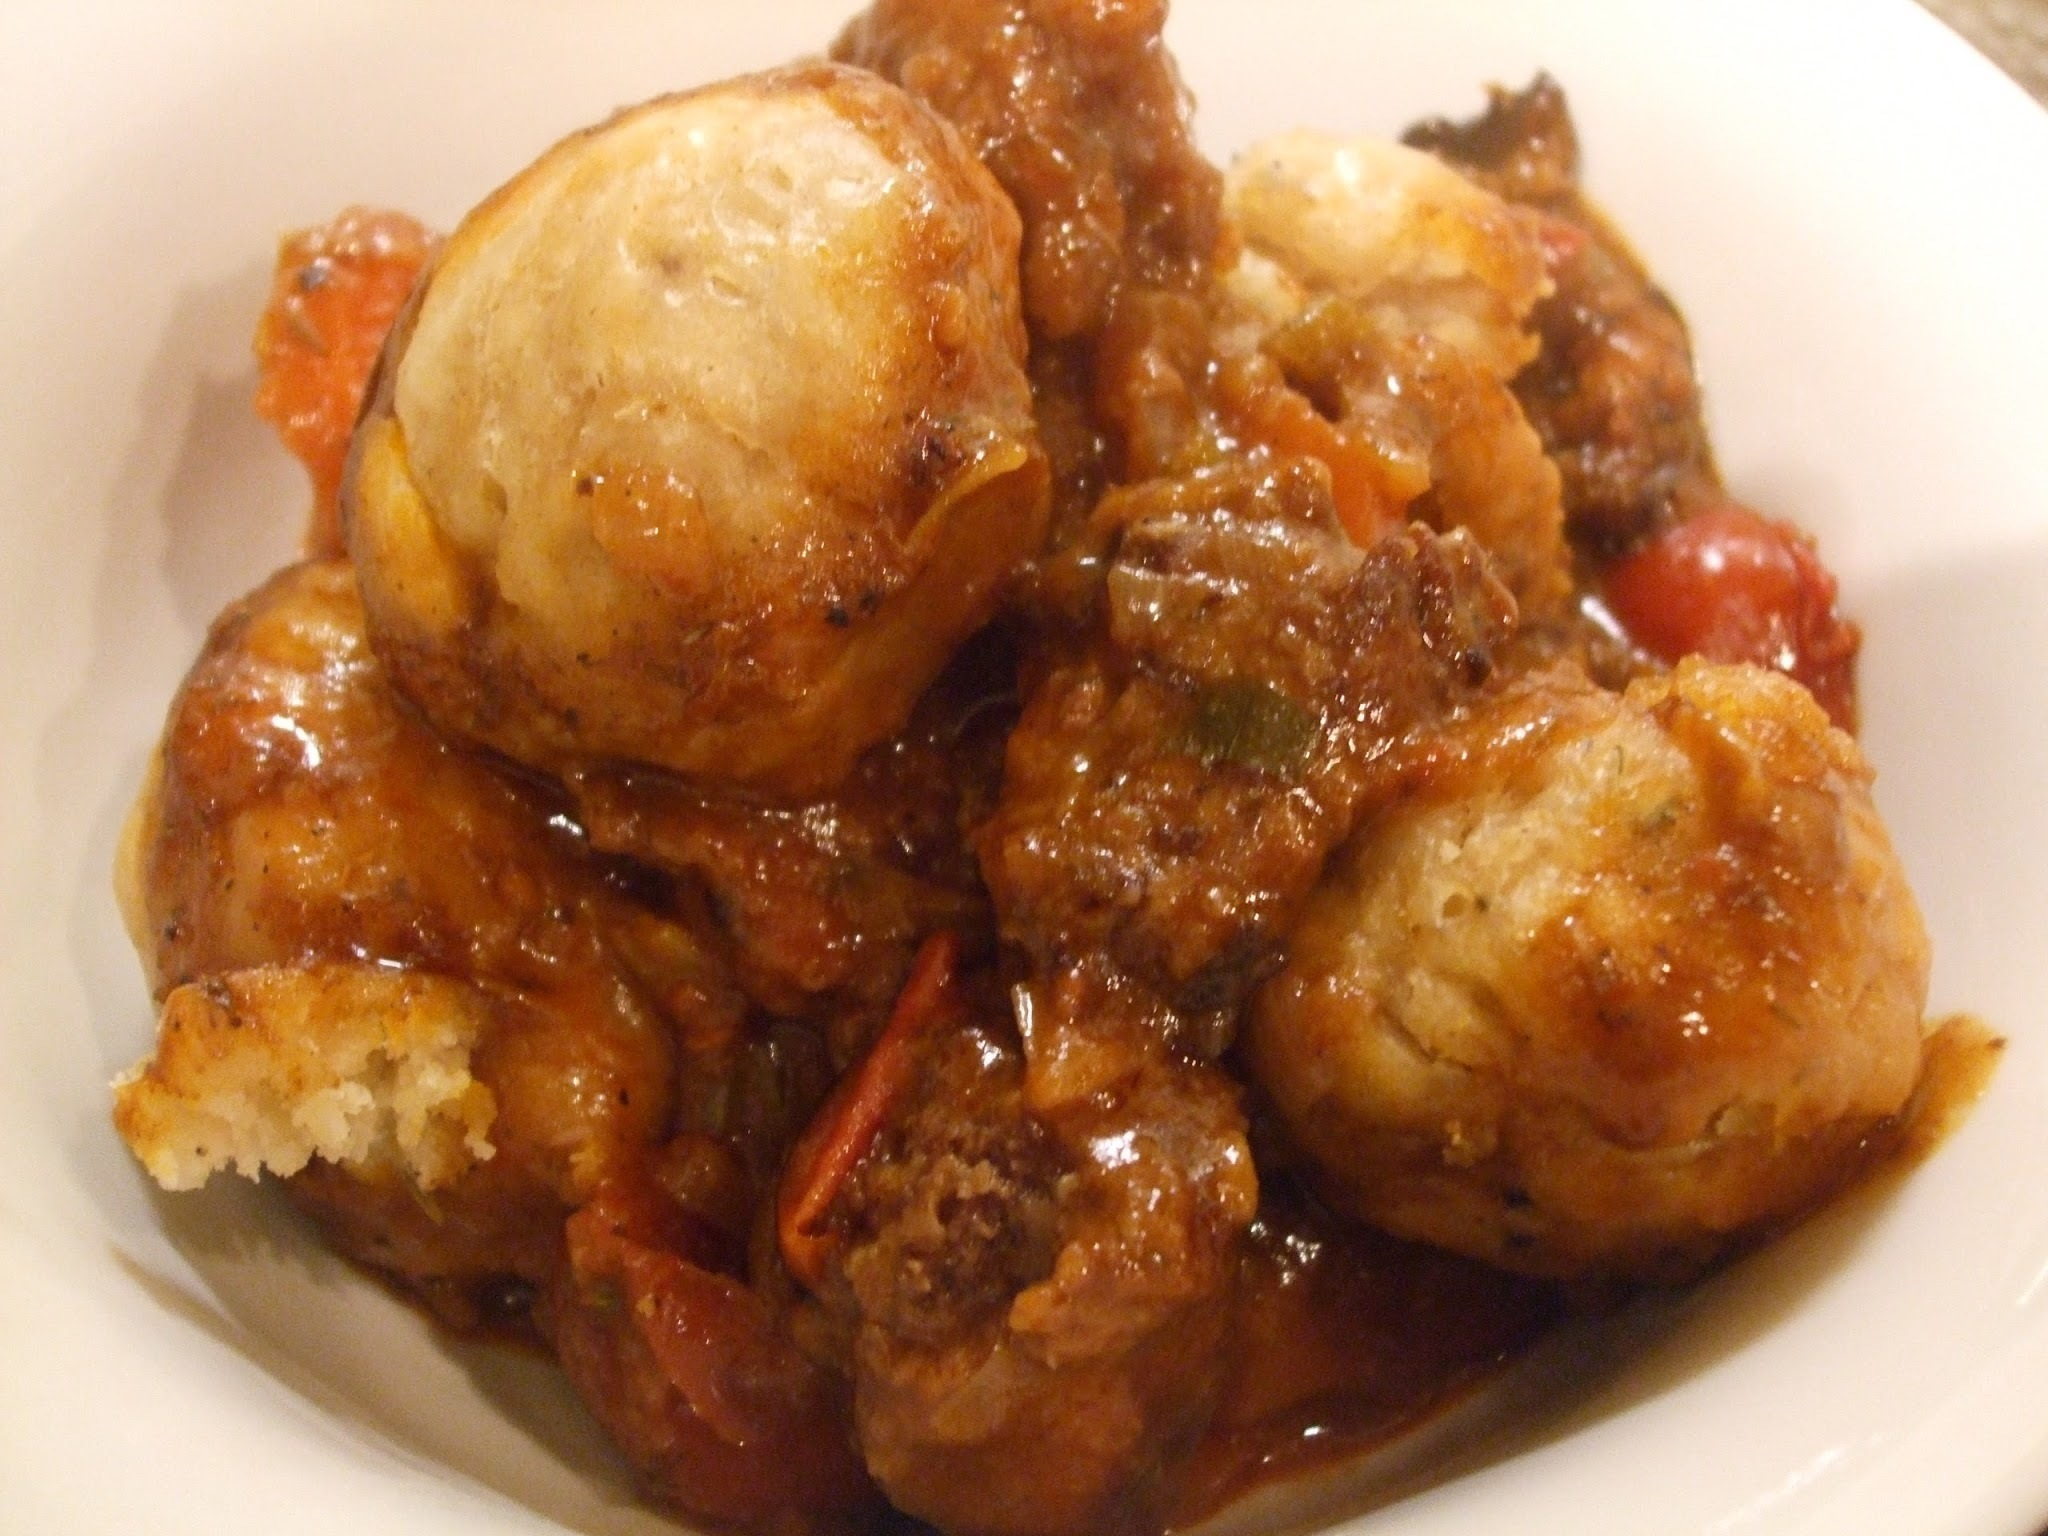 Still a bit cold; more comfort food required! Beef stew with thyme and mustard dumplings